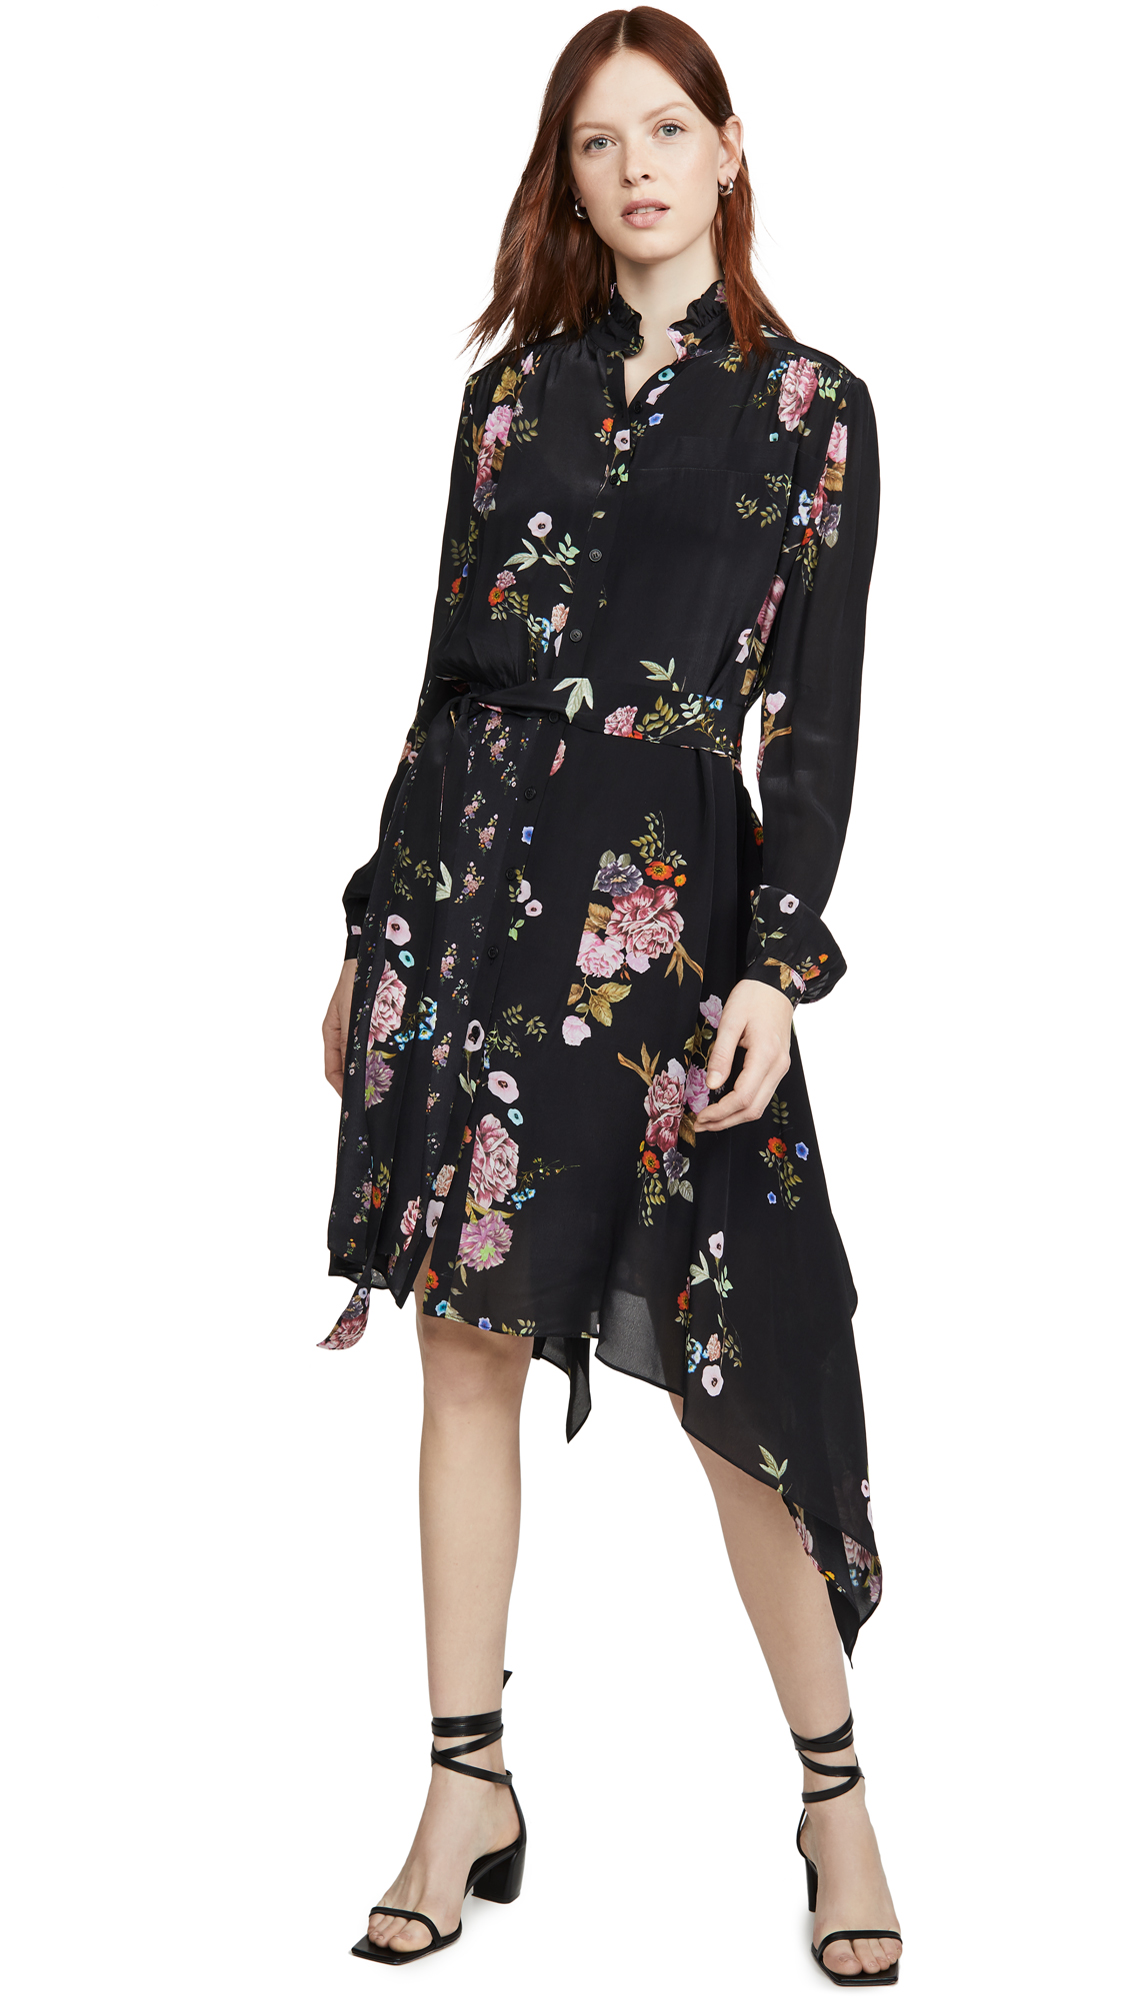 Preen By Thornton Bregazzi Preen Line Jude Dress - 60% Off Sale